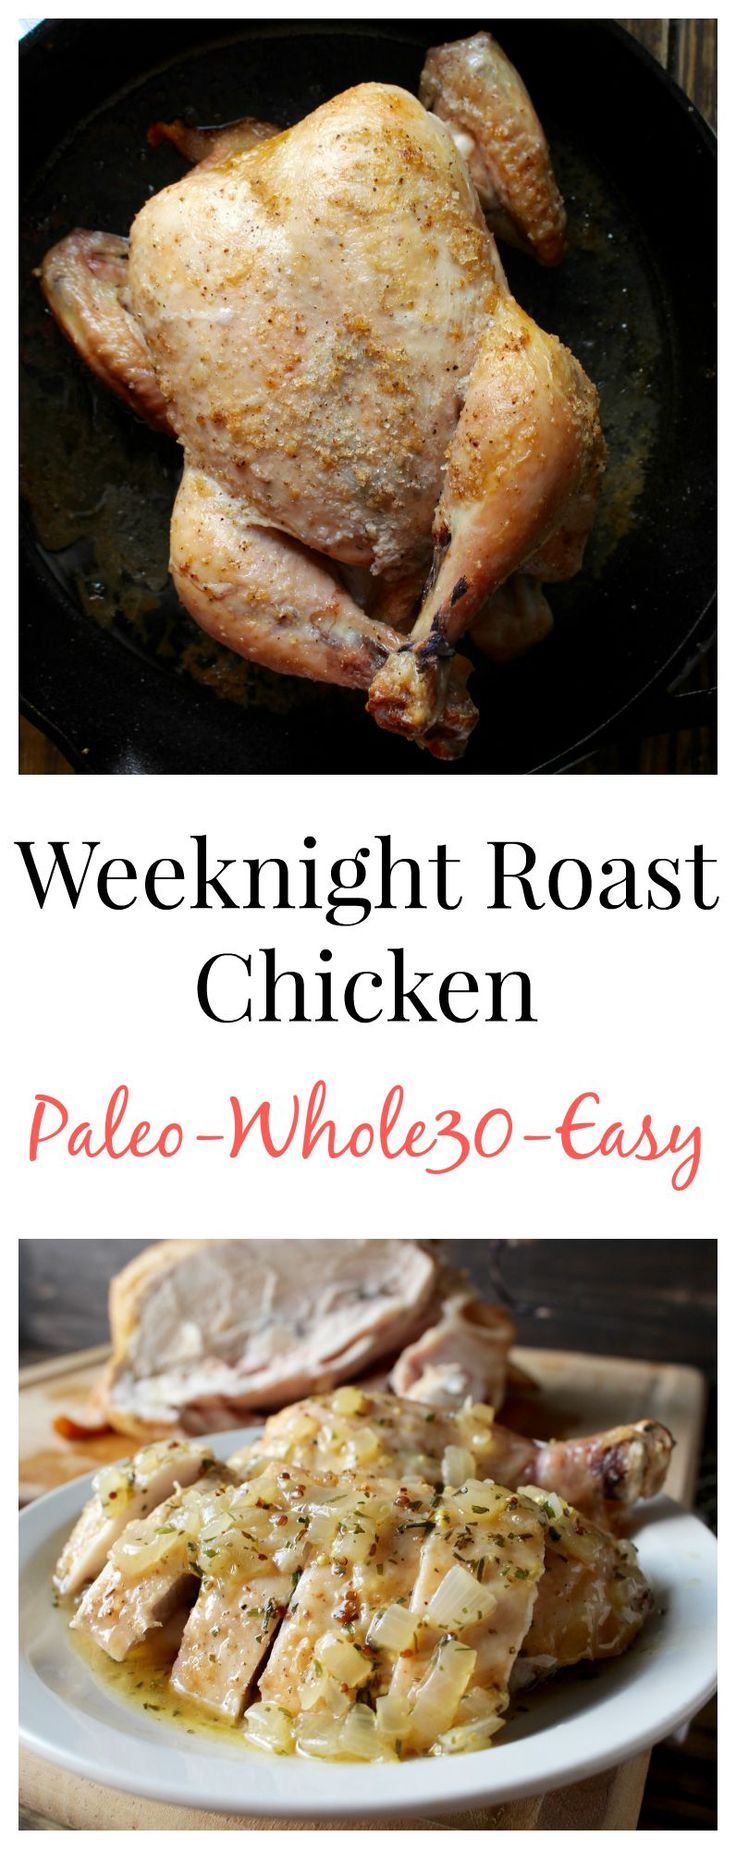 Weeknight Roast Chicken- easy, healthy, and so juicy and delicious!! Paleo, whole30, gluten free.